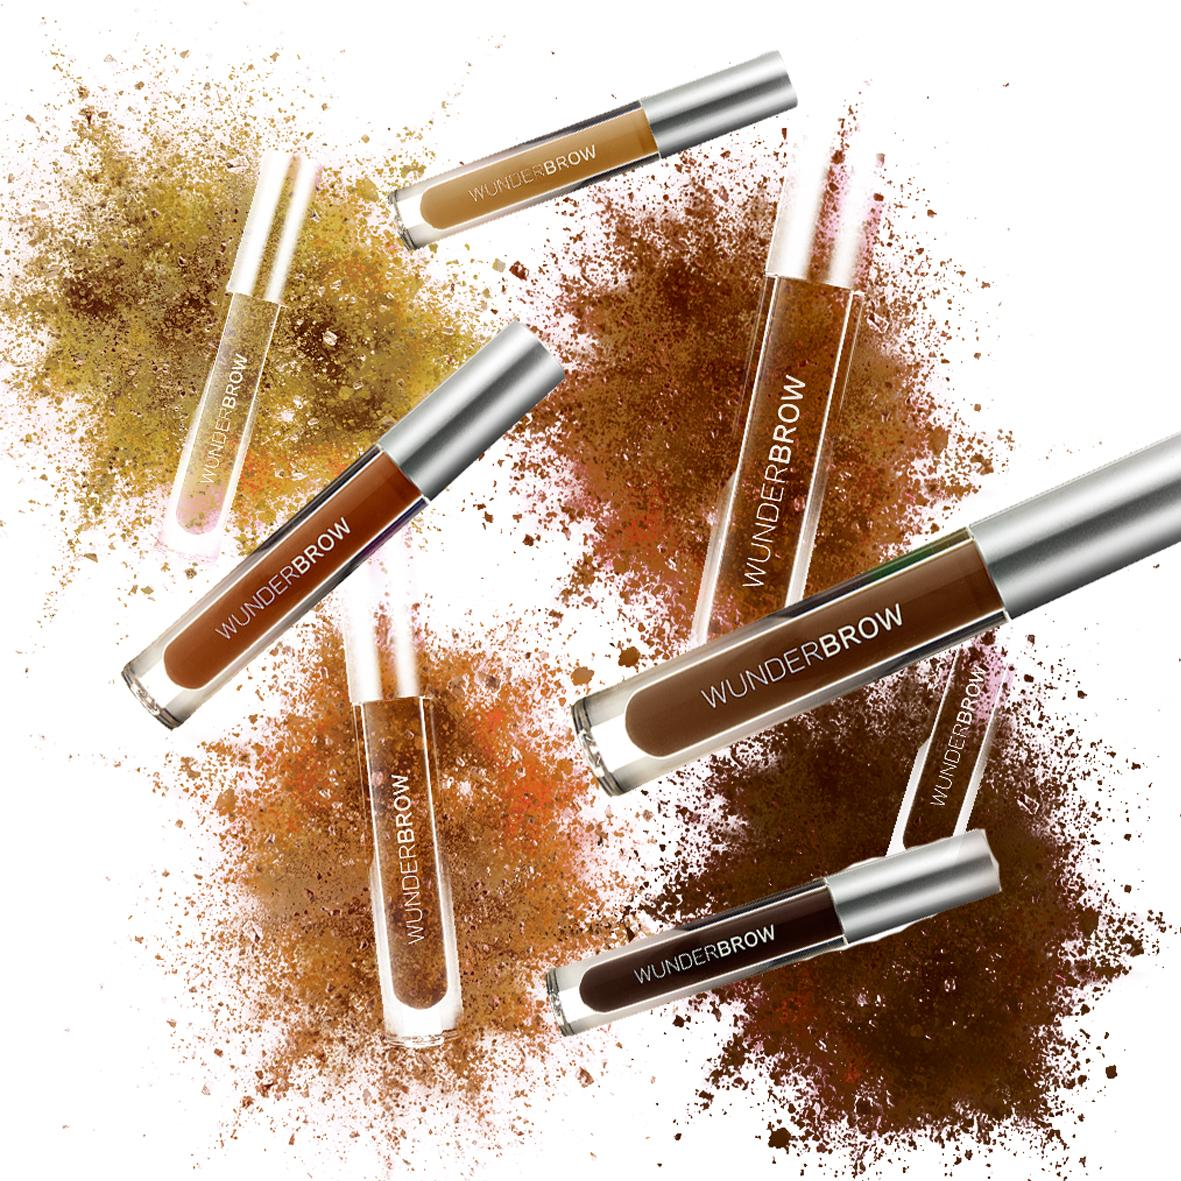 Wunderbrow Perfect Eyebrows in 2 Minutes Blonde, 3 Grams - WUNDER2: Amazon.ca: Beauty